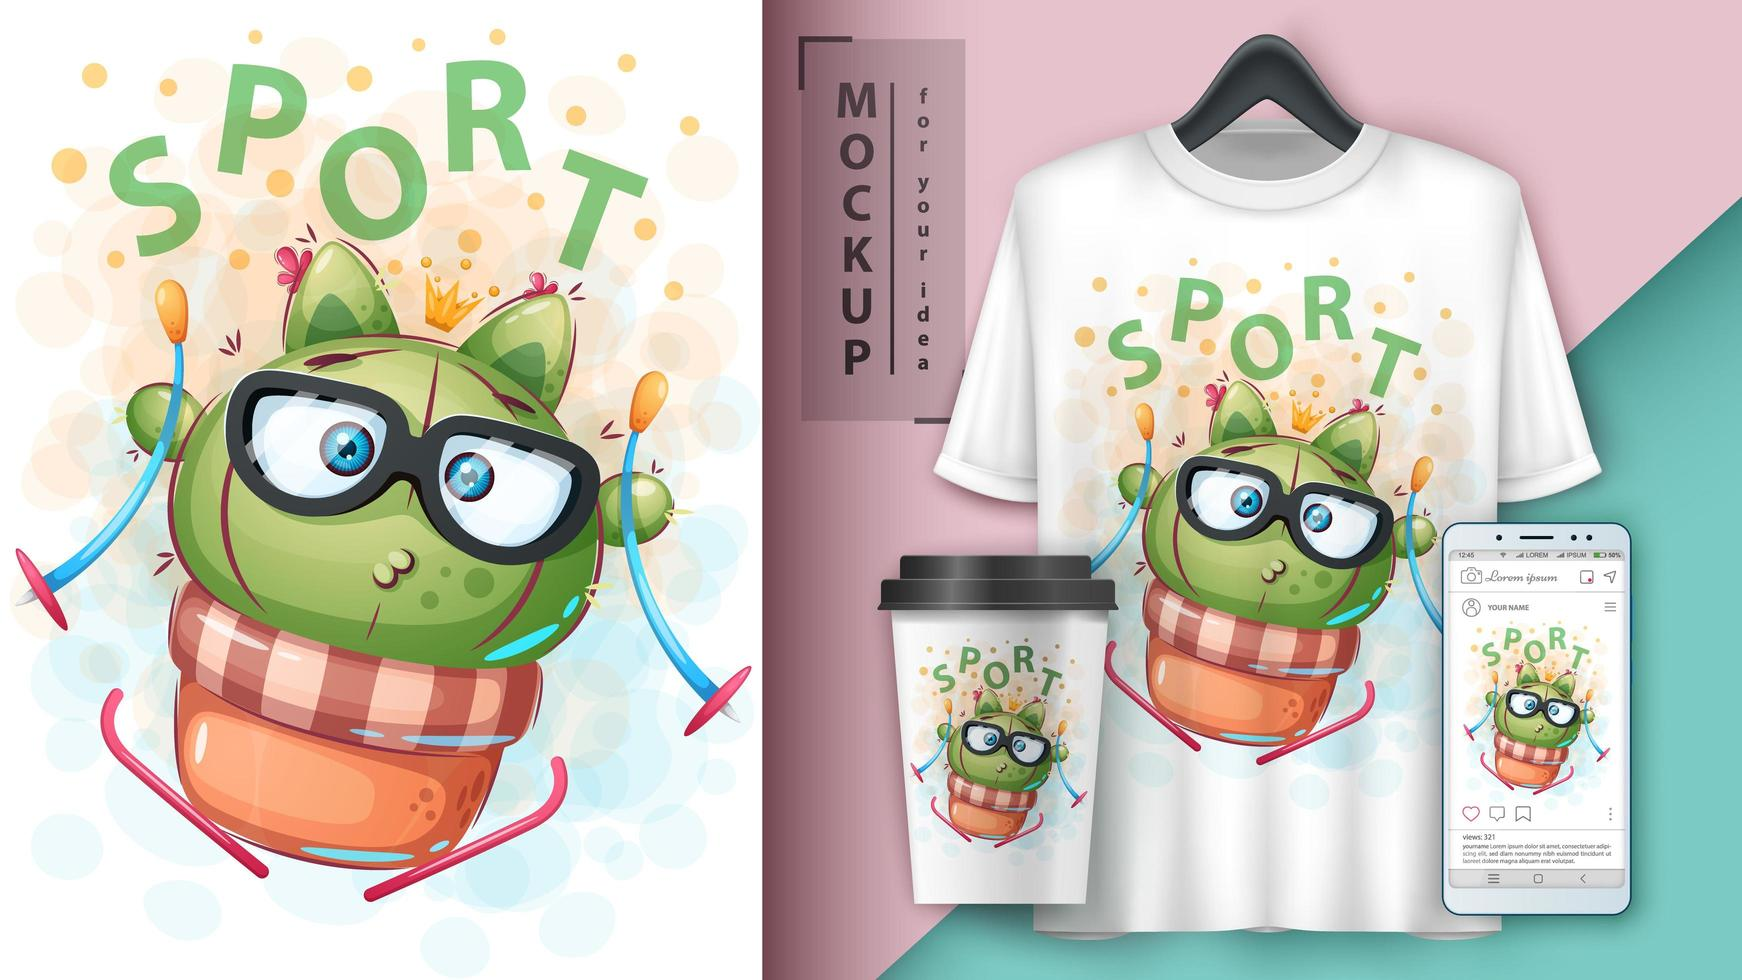 sport ski cactus cartoon ontwerp. vector